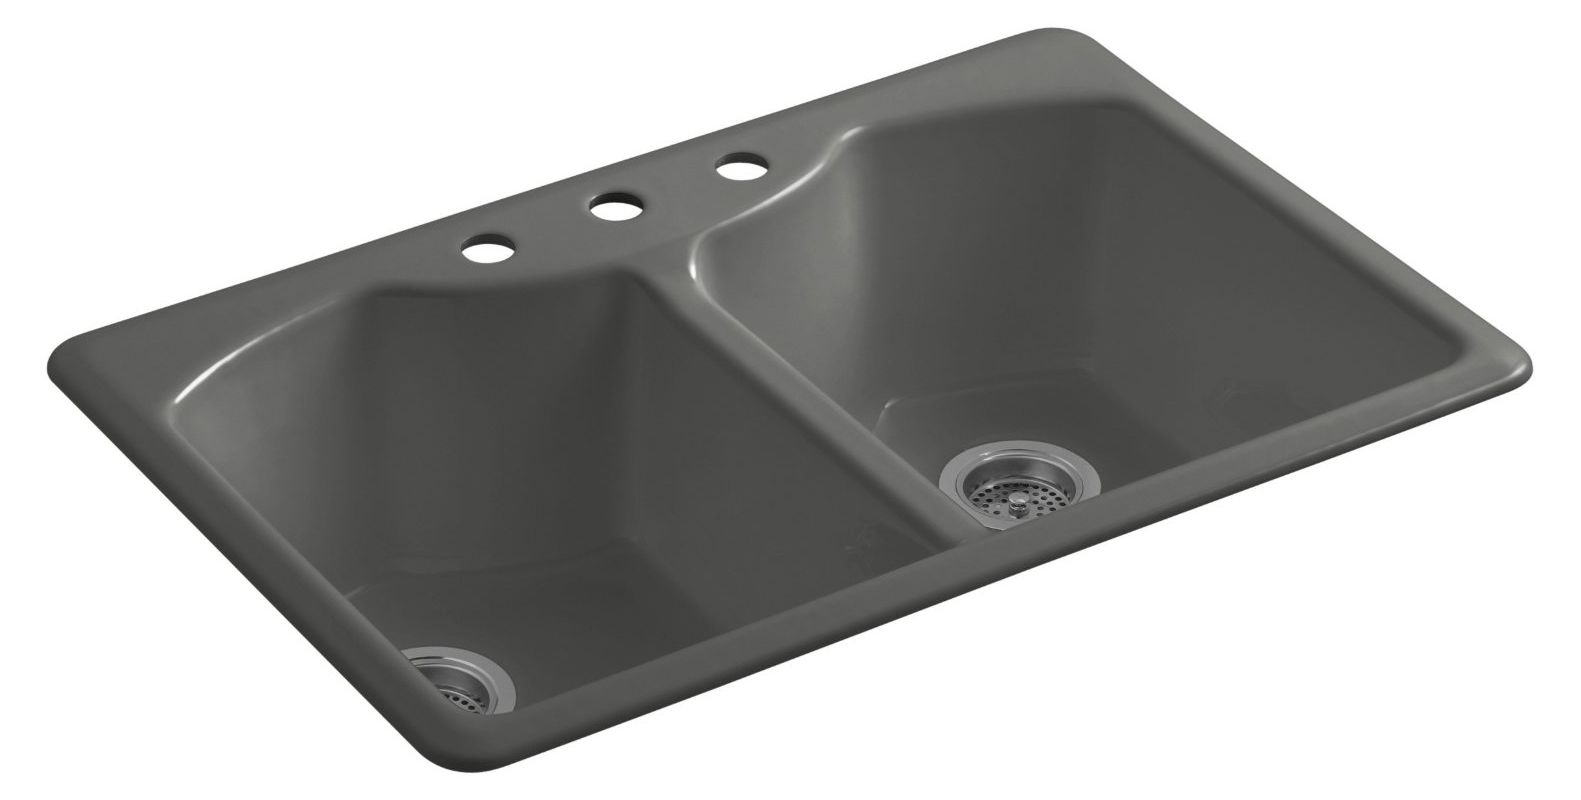 sinks grove chat Affordable kitchen sinks at socal cabinets & floors #farmsink #undersink #oversink ask me for the price  garden grove, ca  chat with kathy.